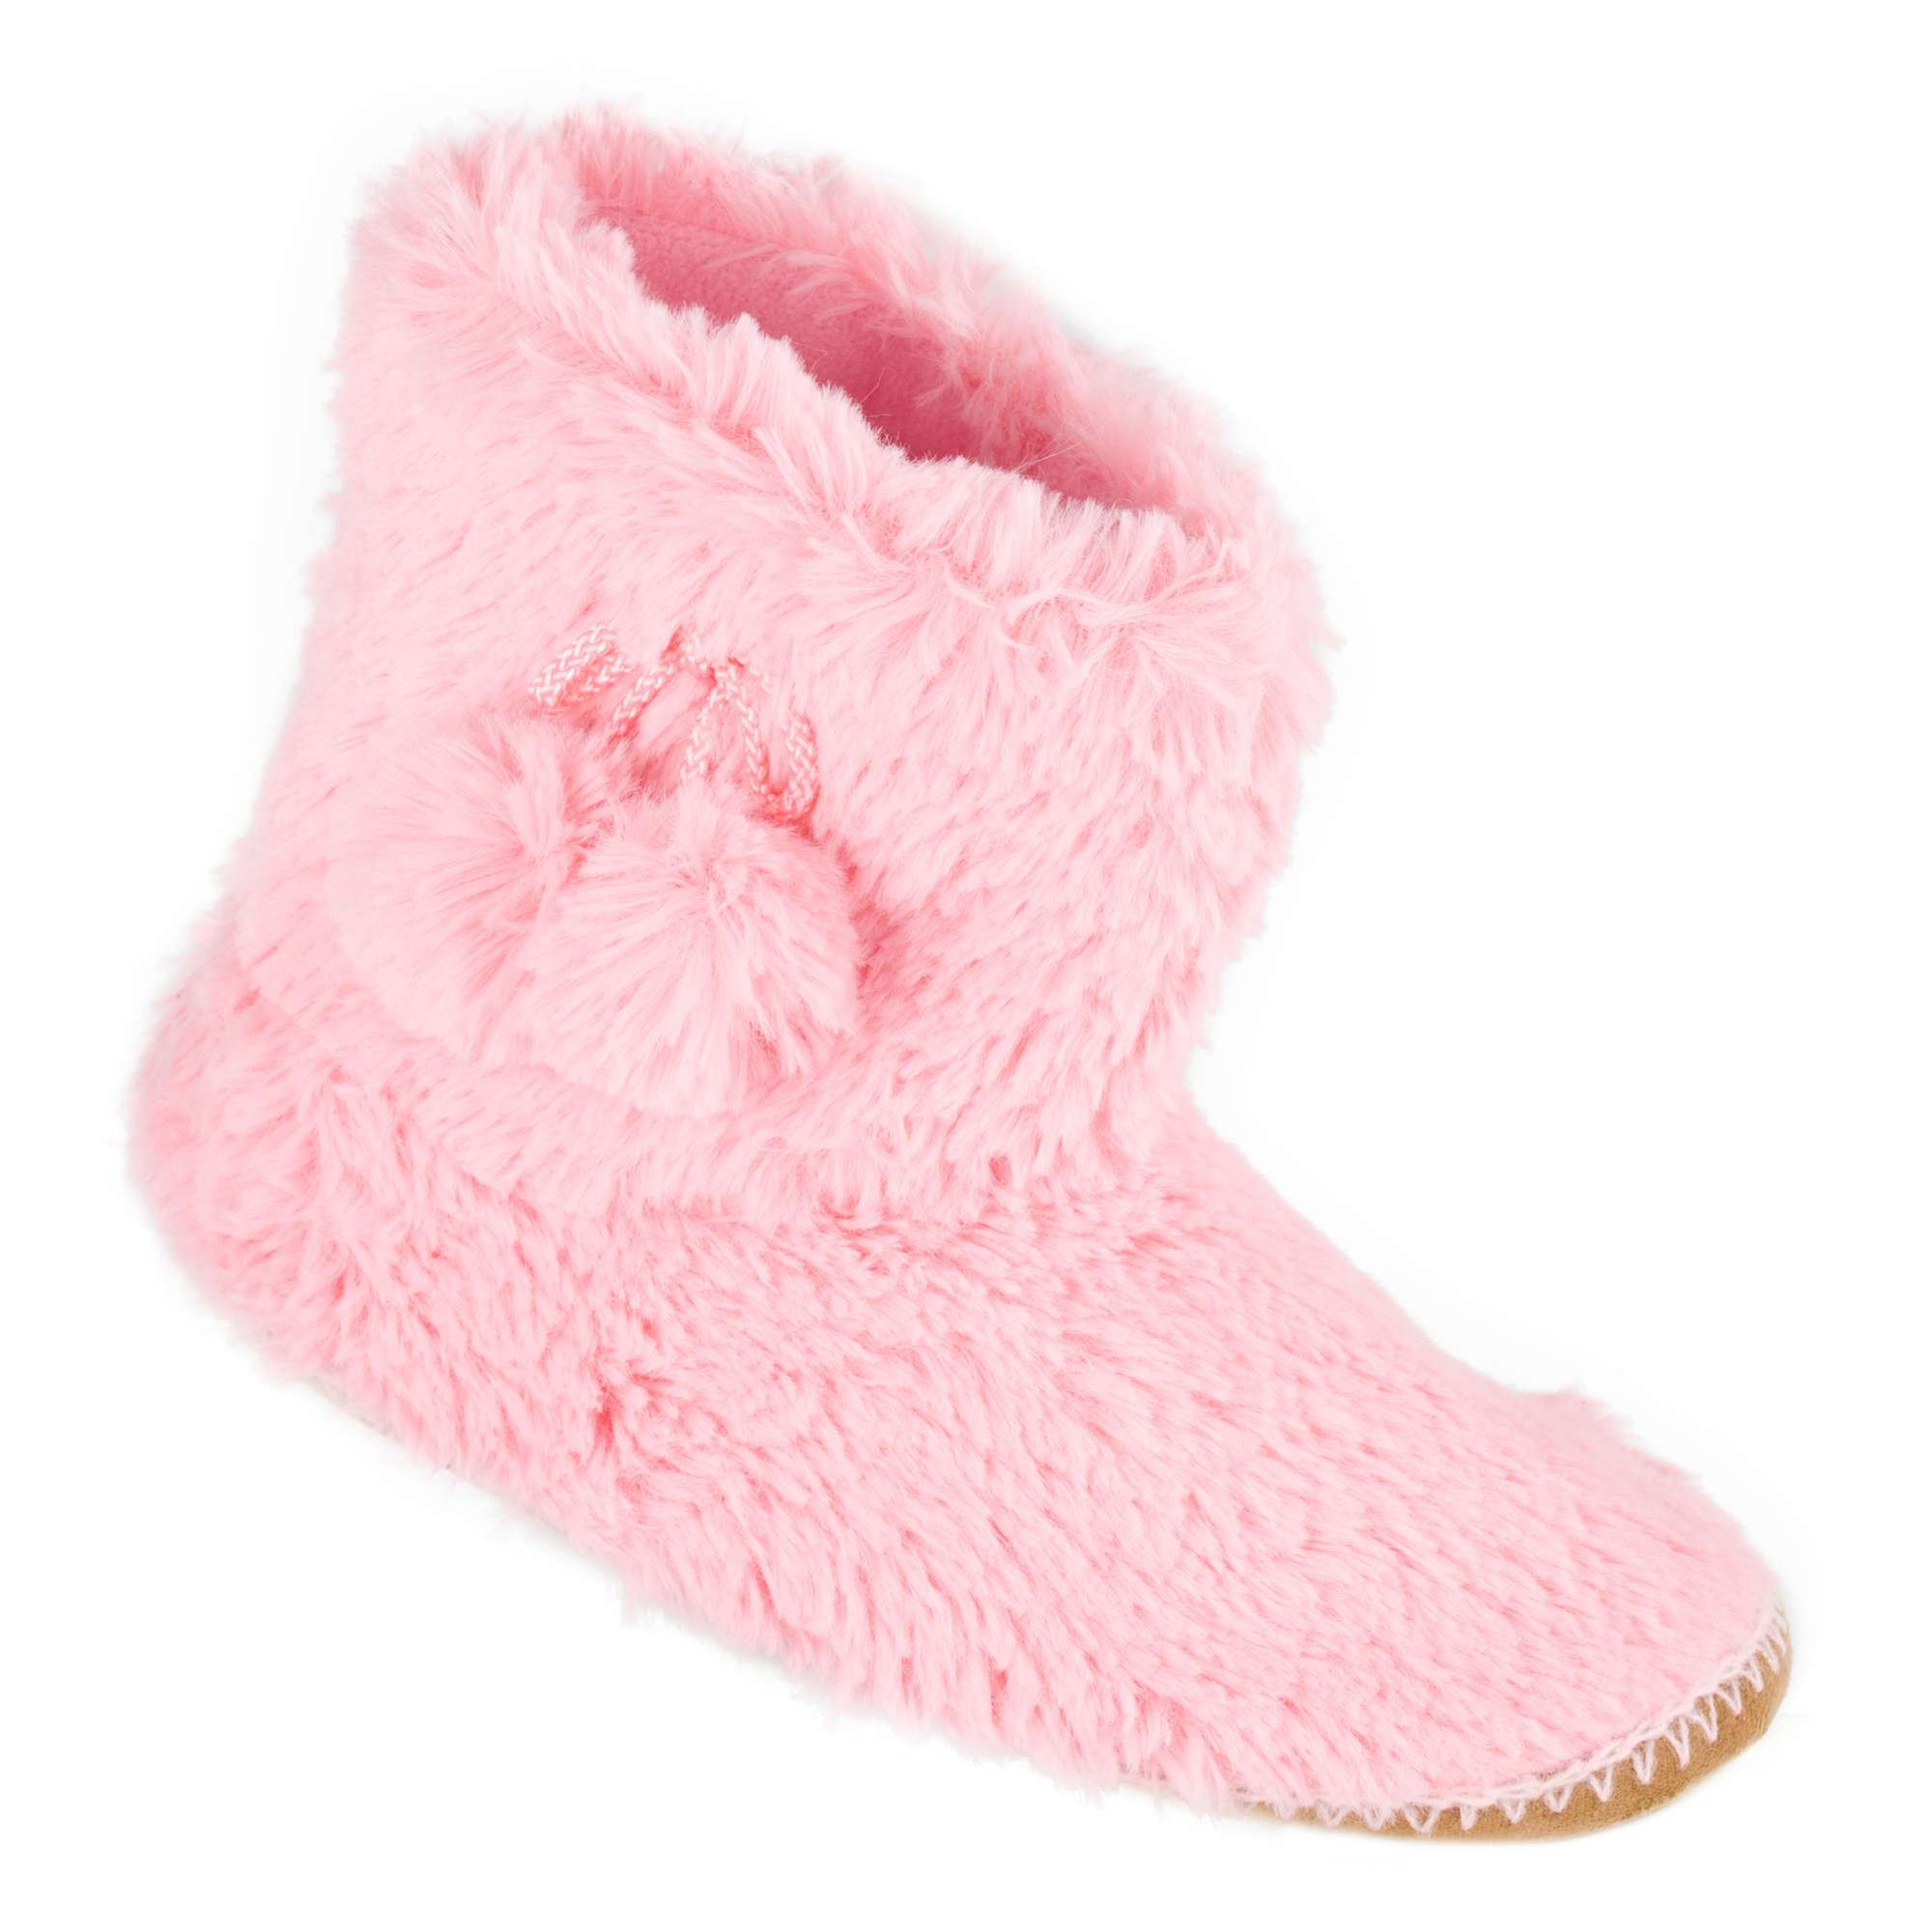 PETER STORM Girls' Saskia Full Fur Slipper Boots